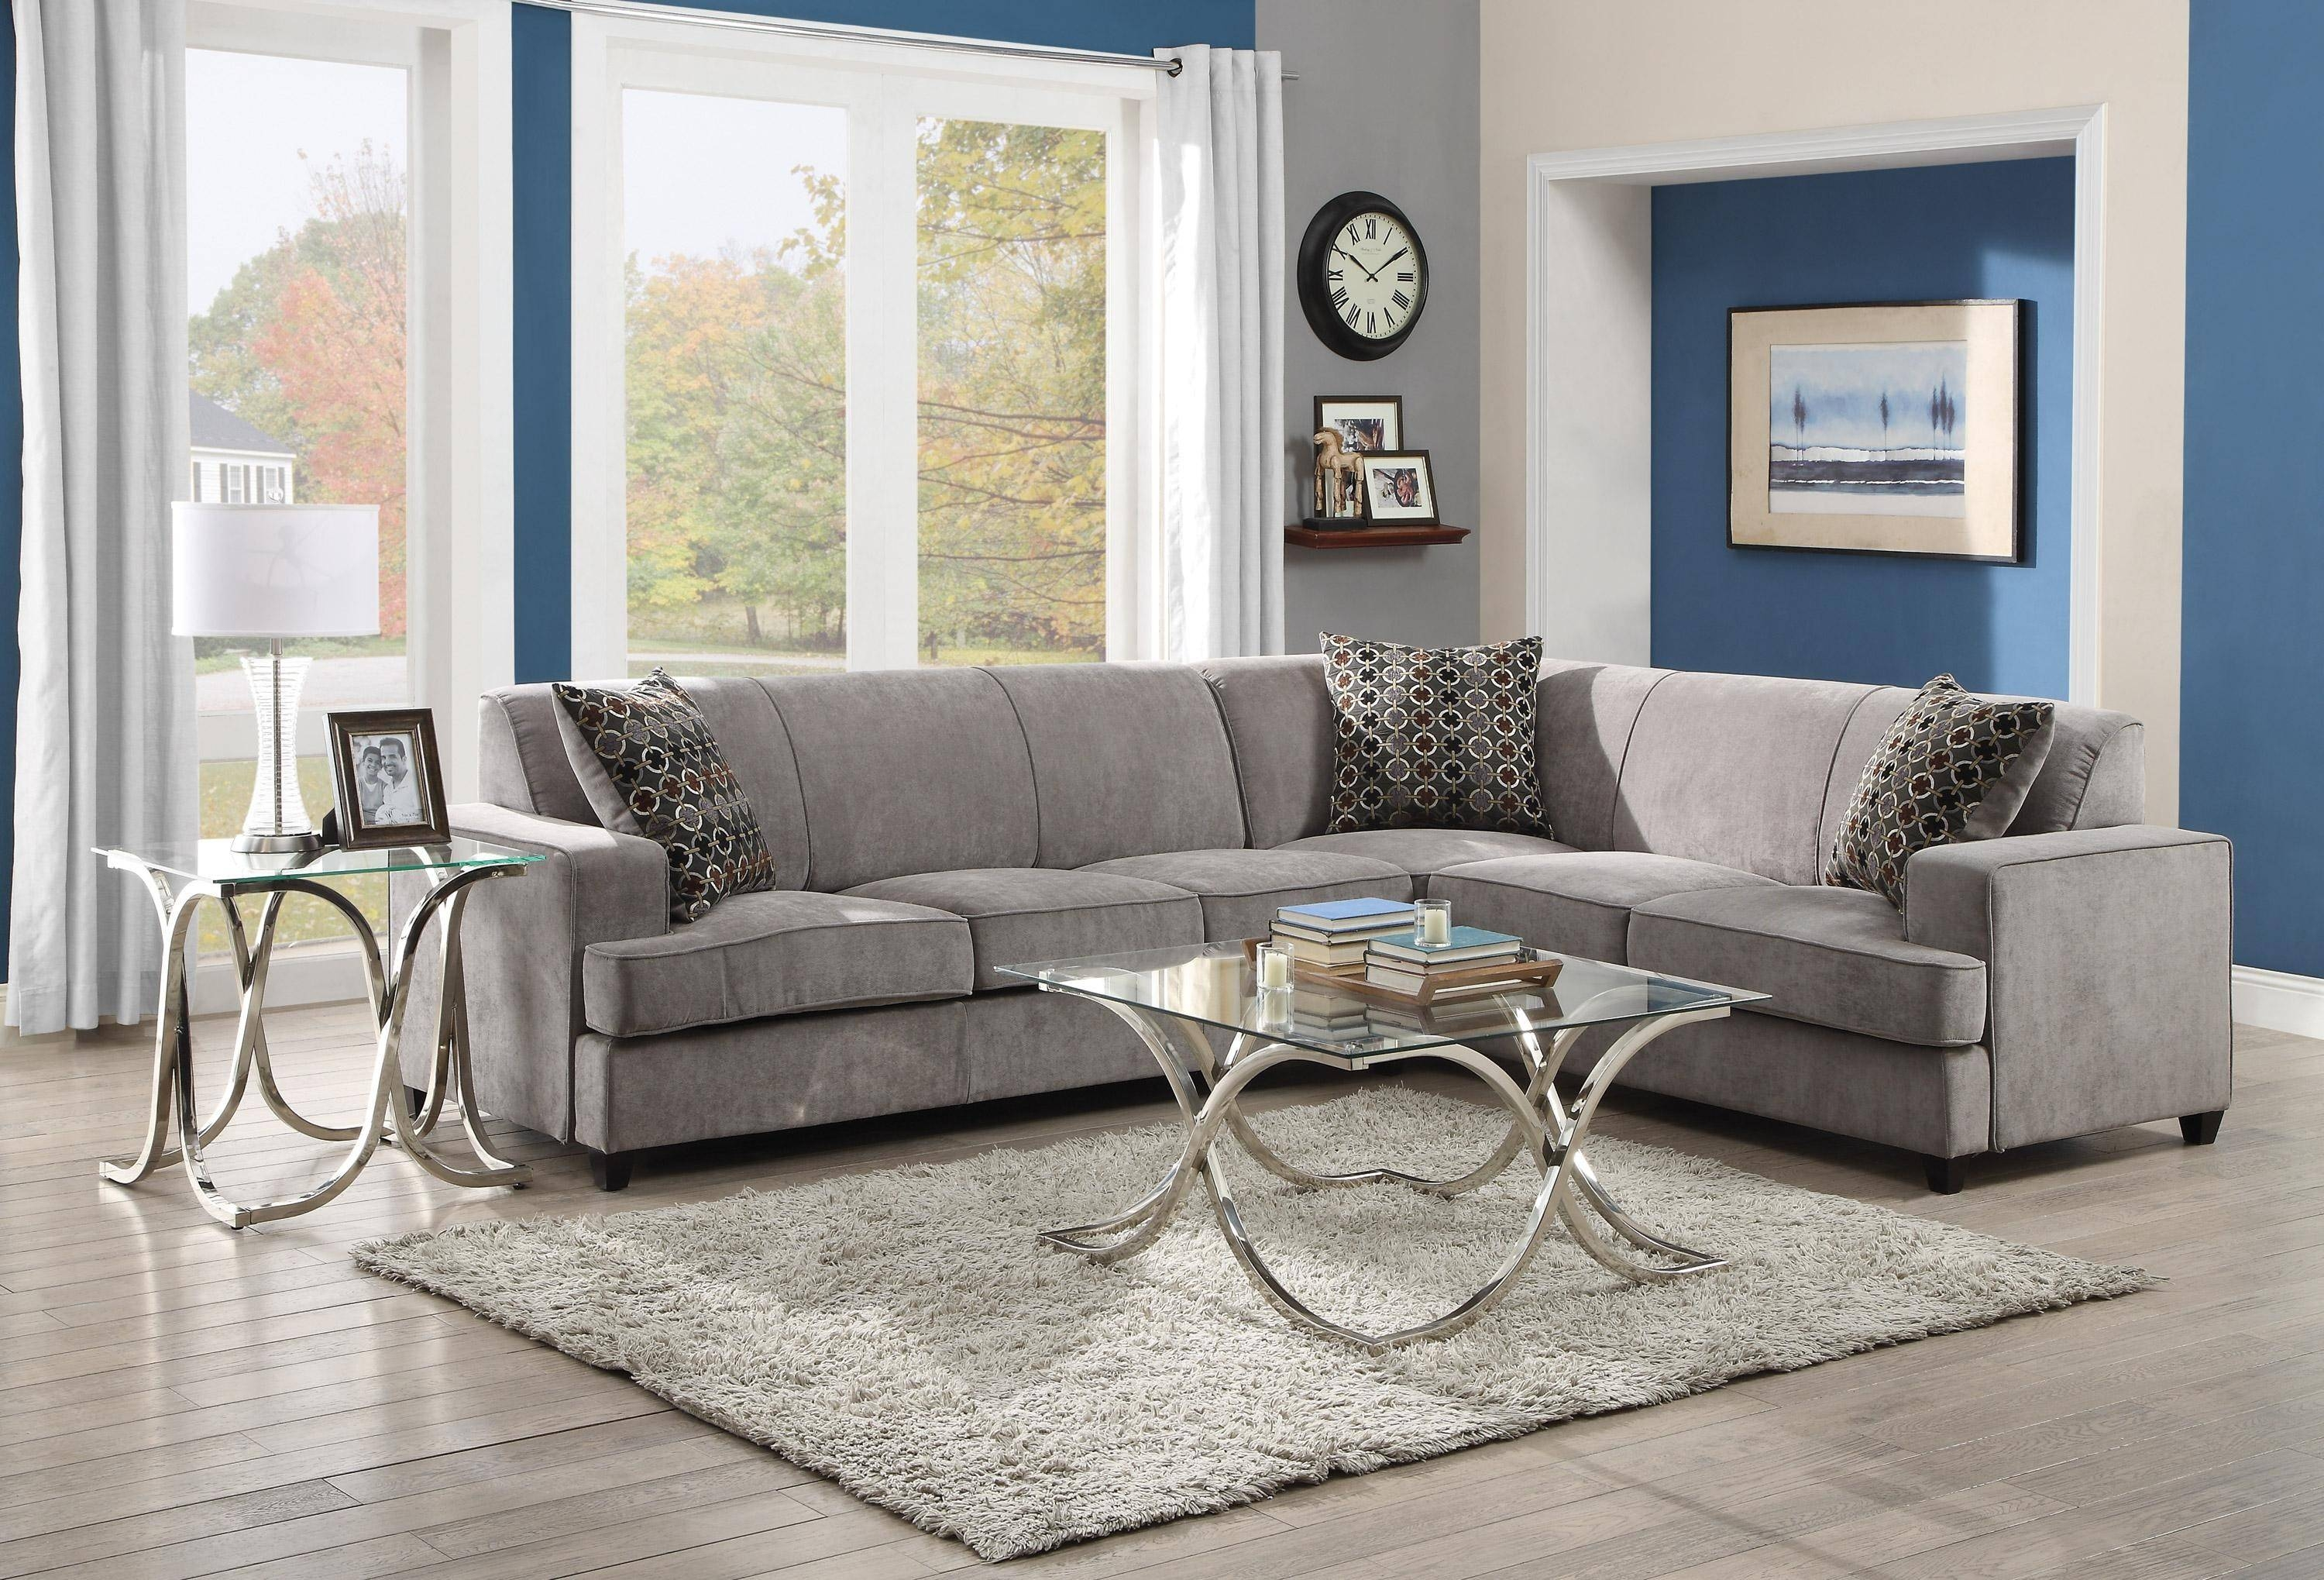 Furniture: Classic And Traditional Style Velvet Sectional Sofa For in Velvet Sofas Sectionals (Image 9 of 25)